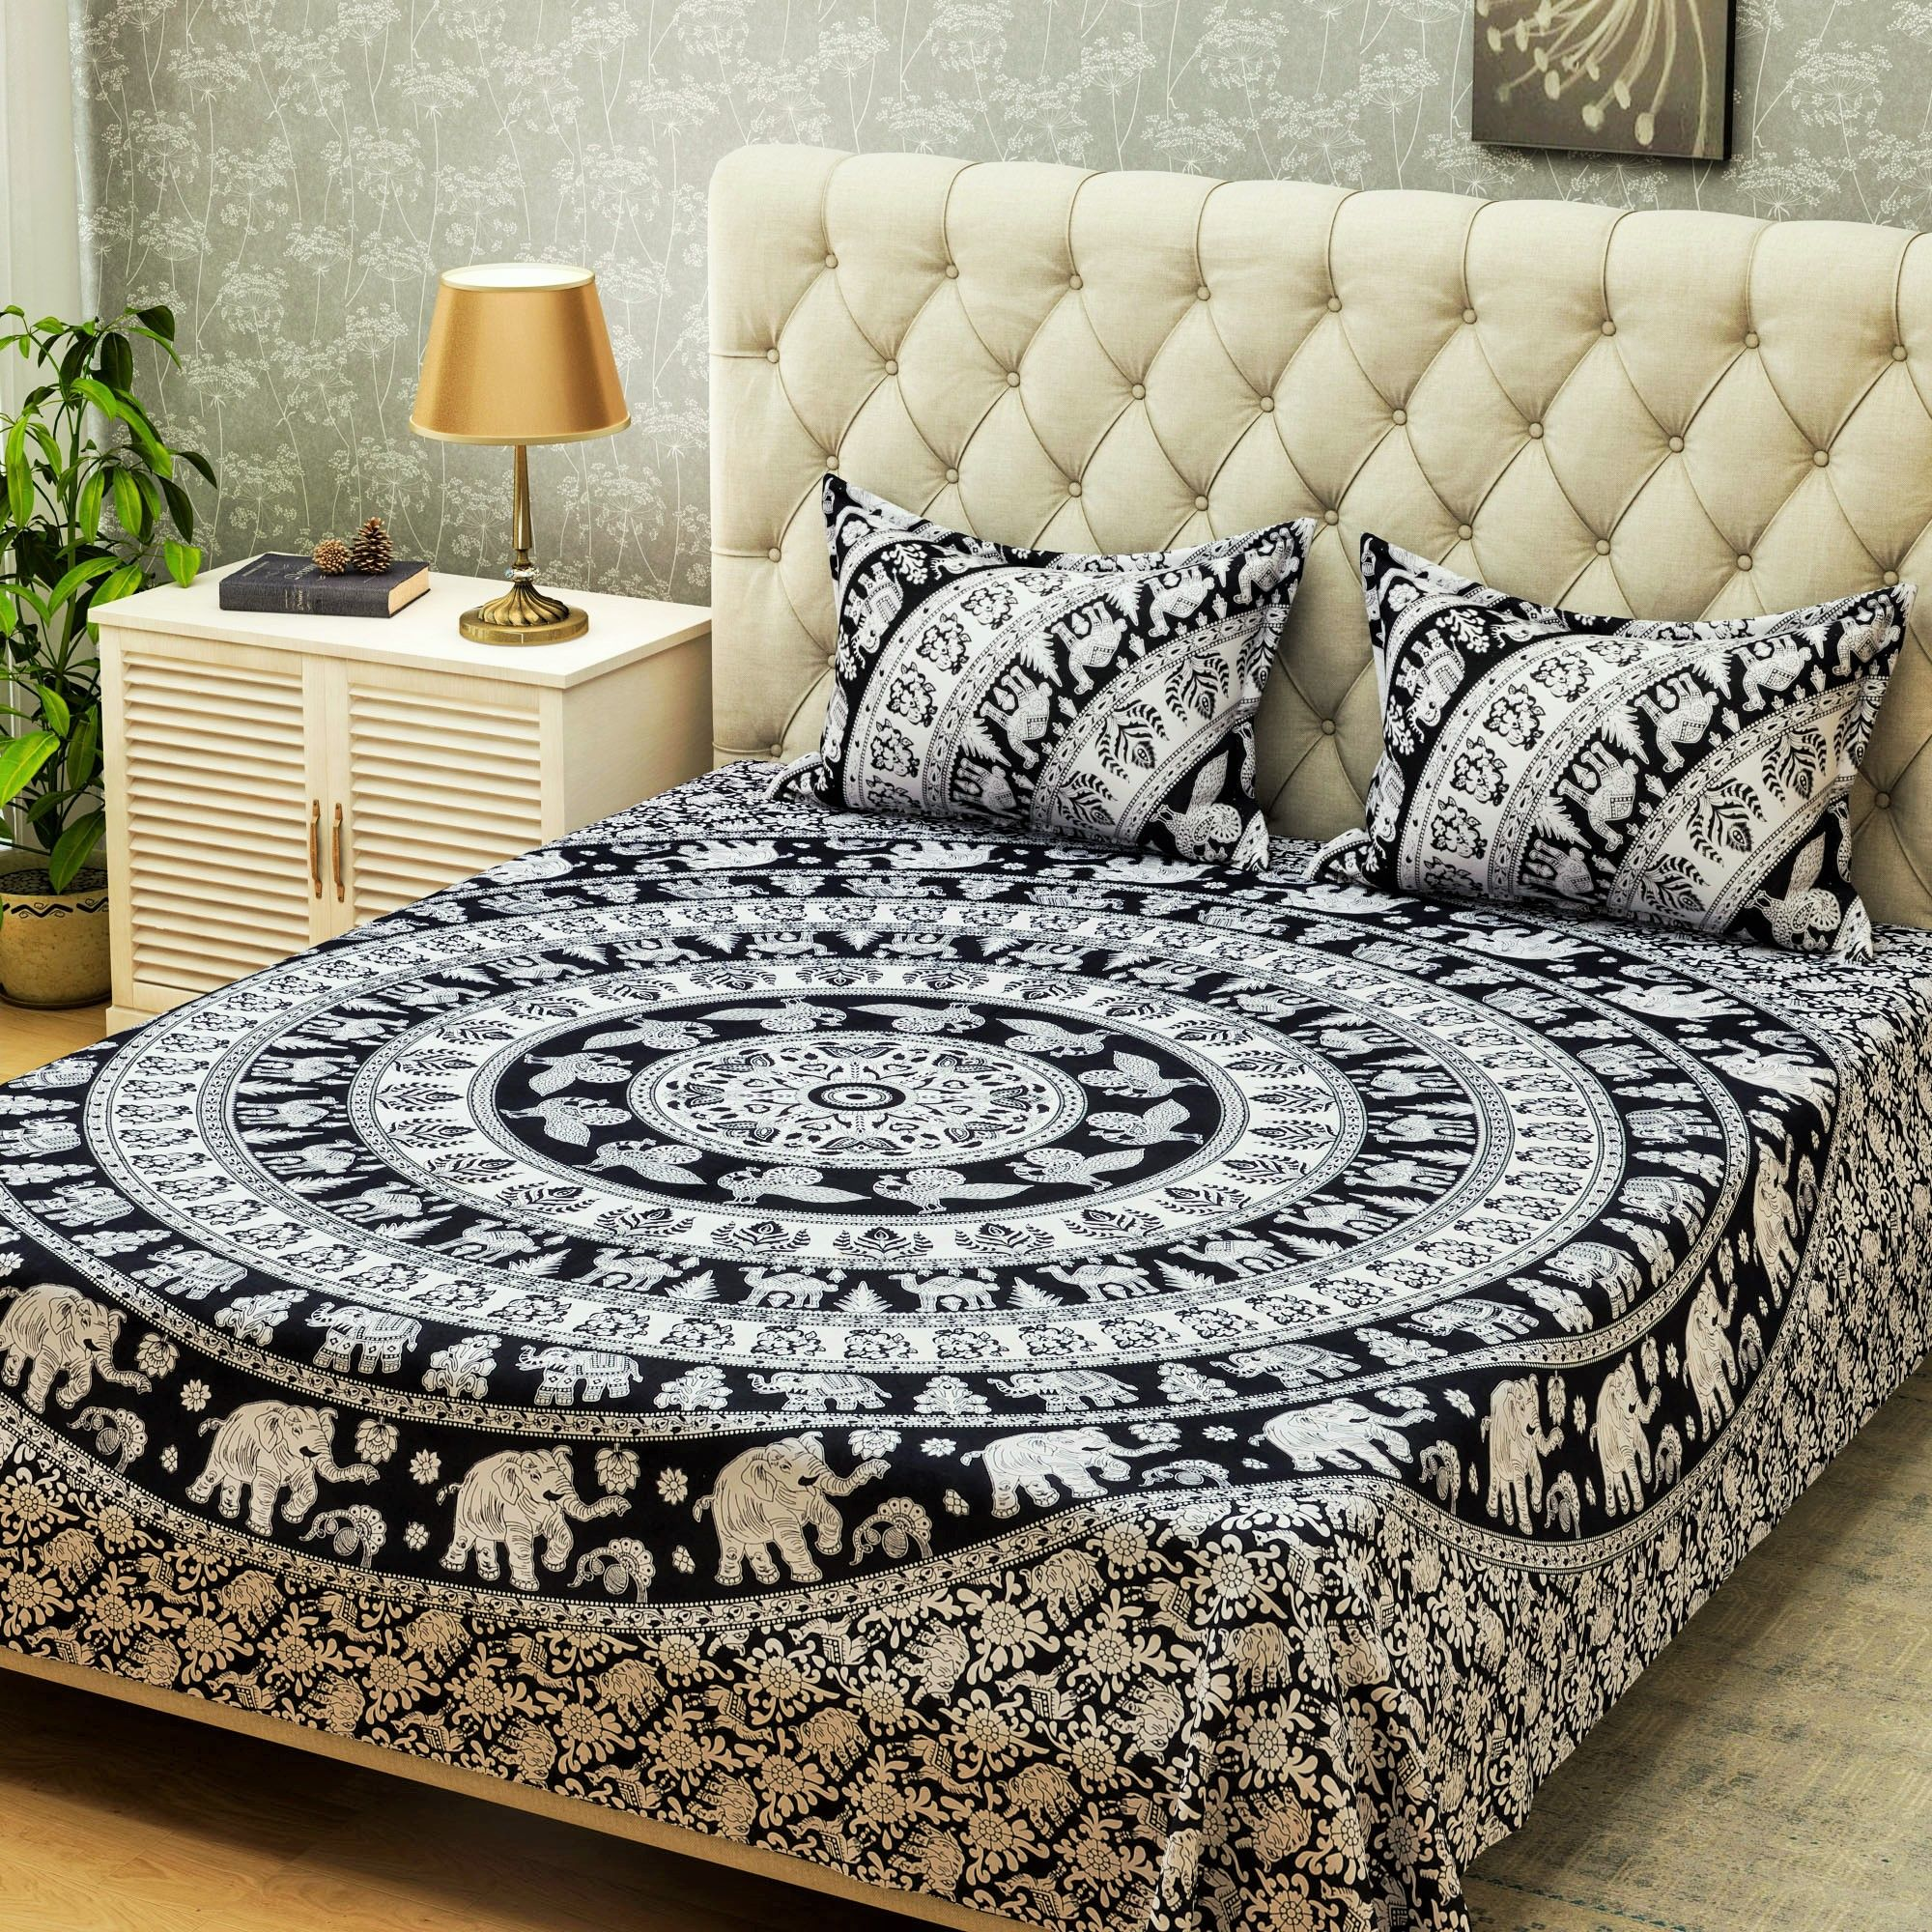 cheap size covers co and bedroom a comforters jcpenney bag camo ideas for duvet blue bedding set sets bedspreads target decoration wonderful bed comforter queen in